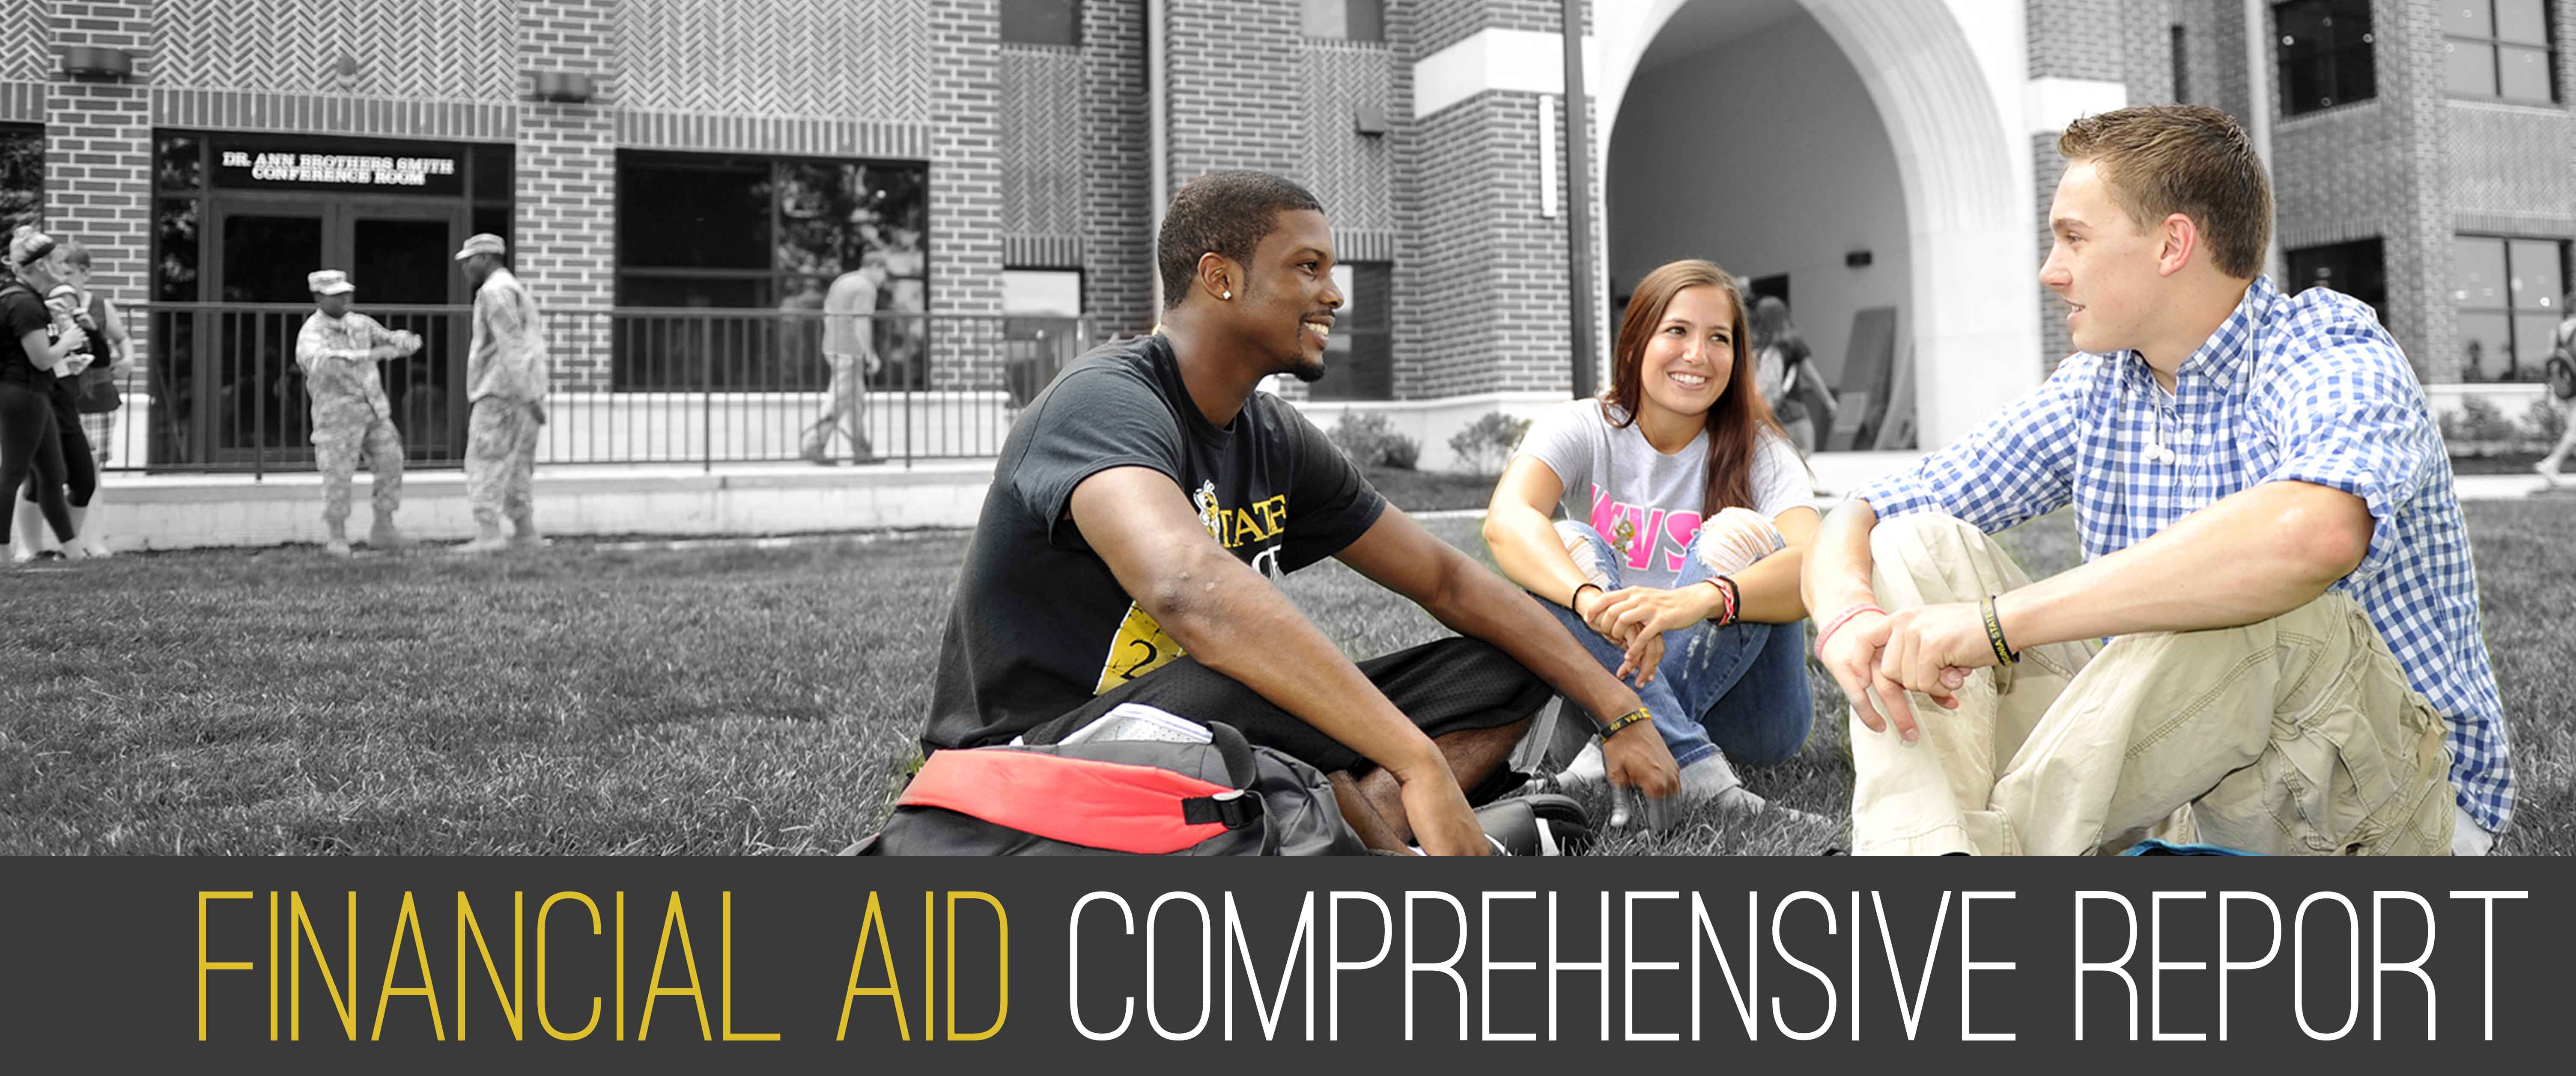 Financial aid comprehensive report image